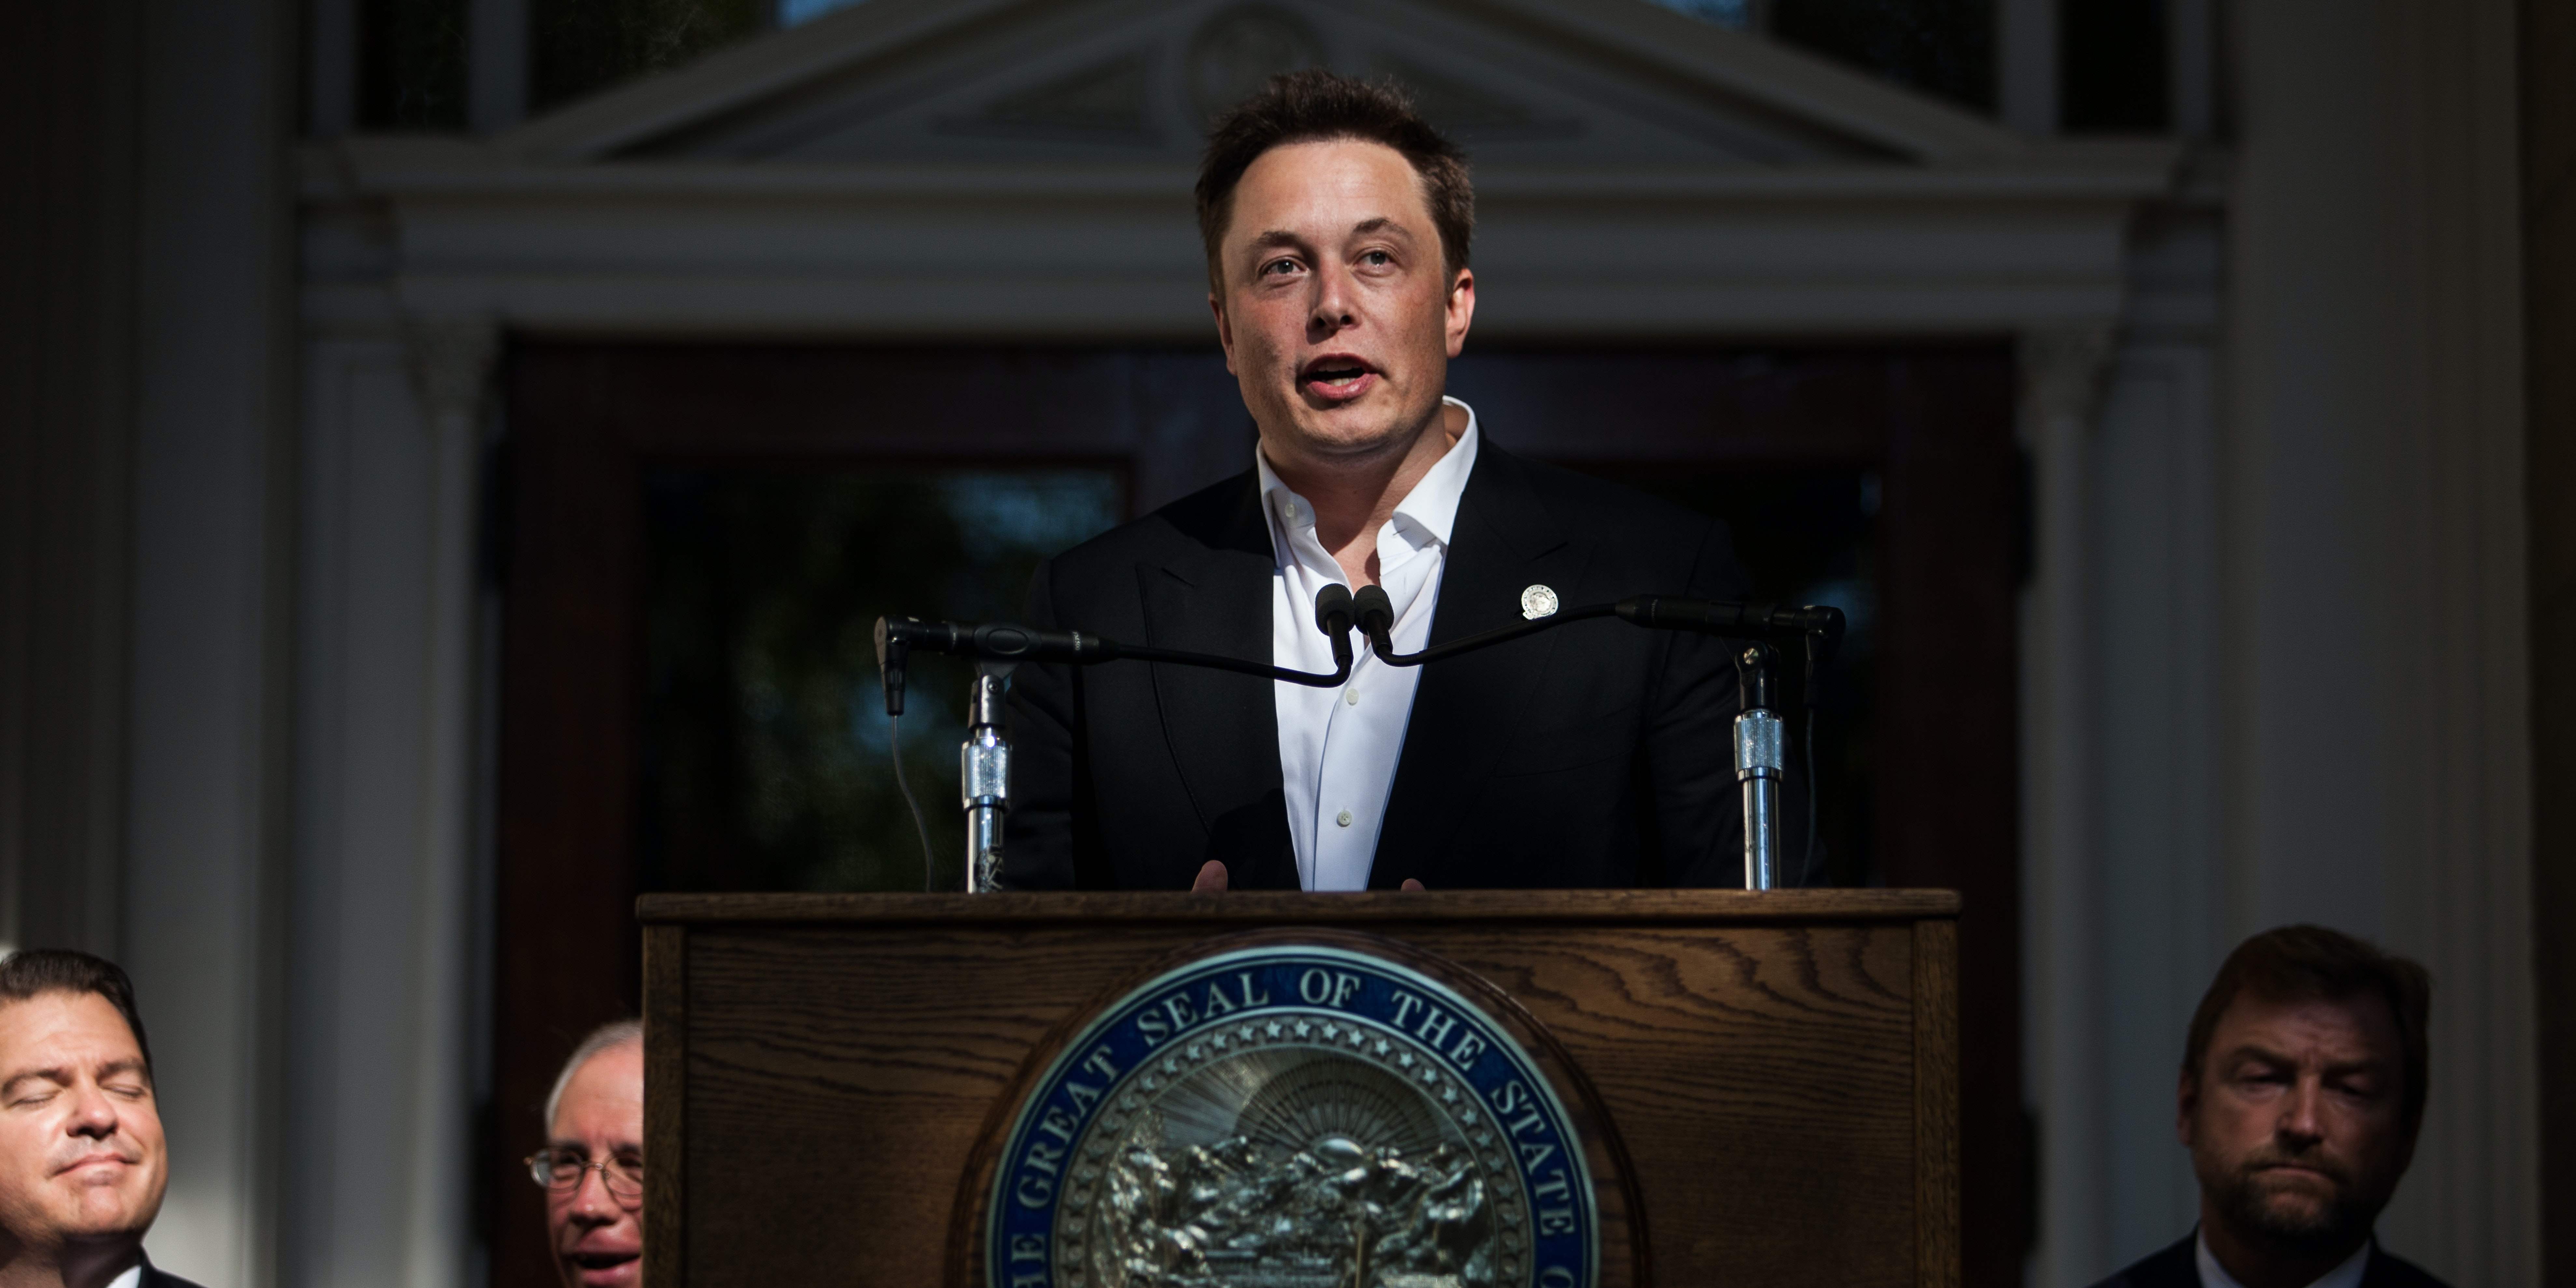 CARSON CITY, NEVADA- SEPTEMBER 4: Elon Musk, CEO of Tesla Motors, speaks at a press conference at the Nevada State Capitol, September 4, 2014 in Carson City, Nevada. Musk and Sandoval announced a plan to build a Tesla Gigafactory in Nevada to produce batteries for electric vehicles providing 6,500 jobs to the state. (Photo by Max Whittaker/Getty Images)